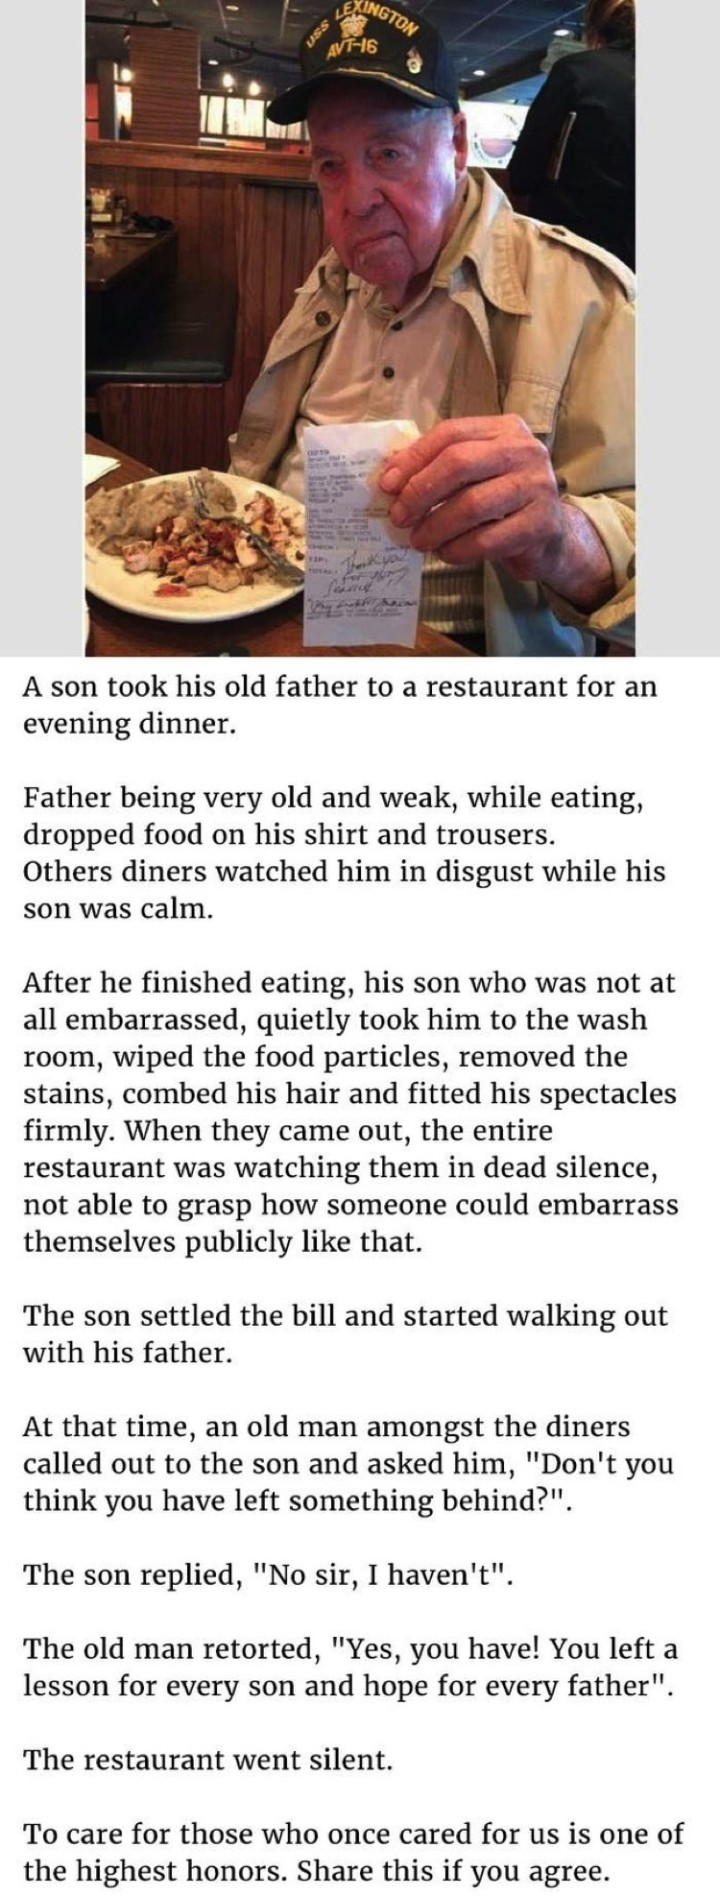 A Son Took His Father to a Eat and Taught Everyone a Lesson.